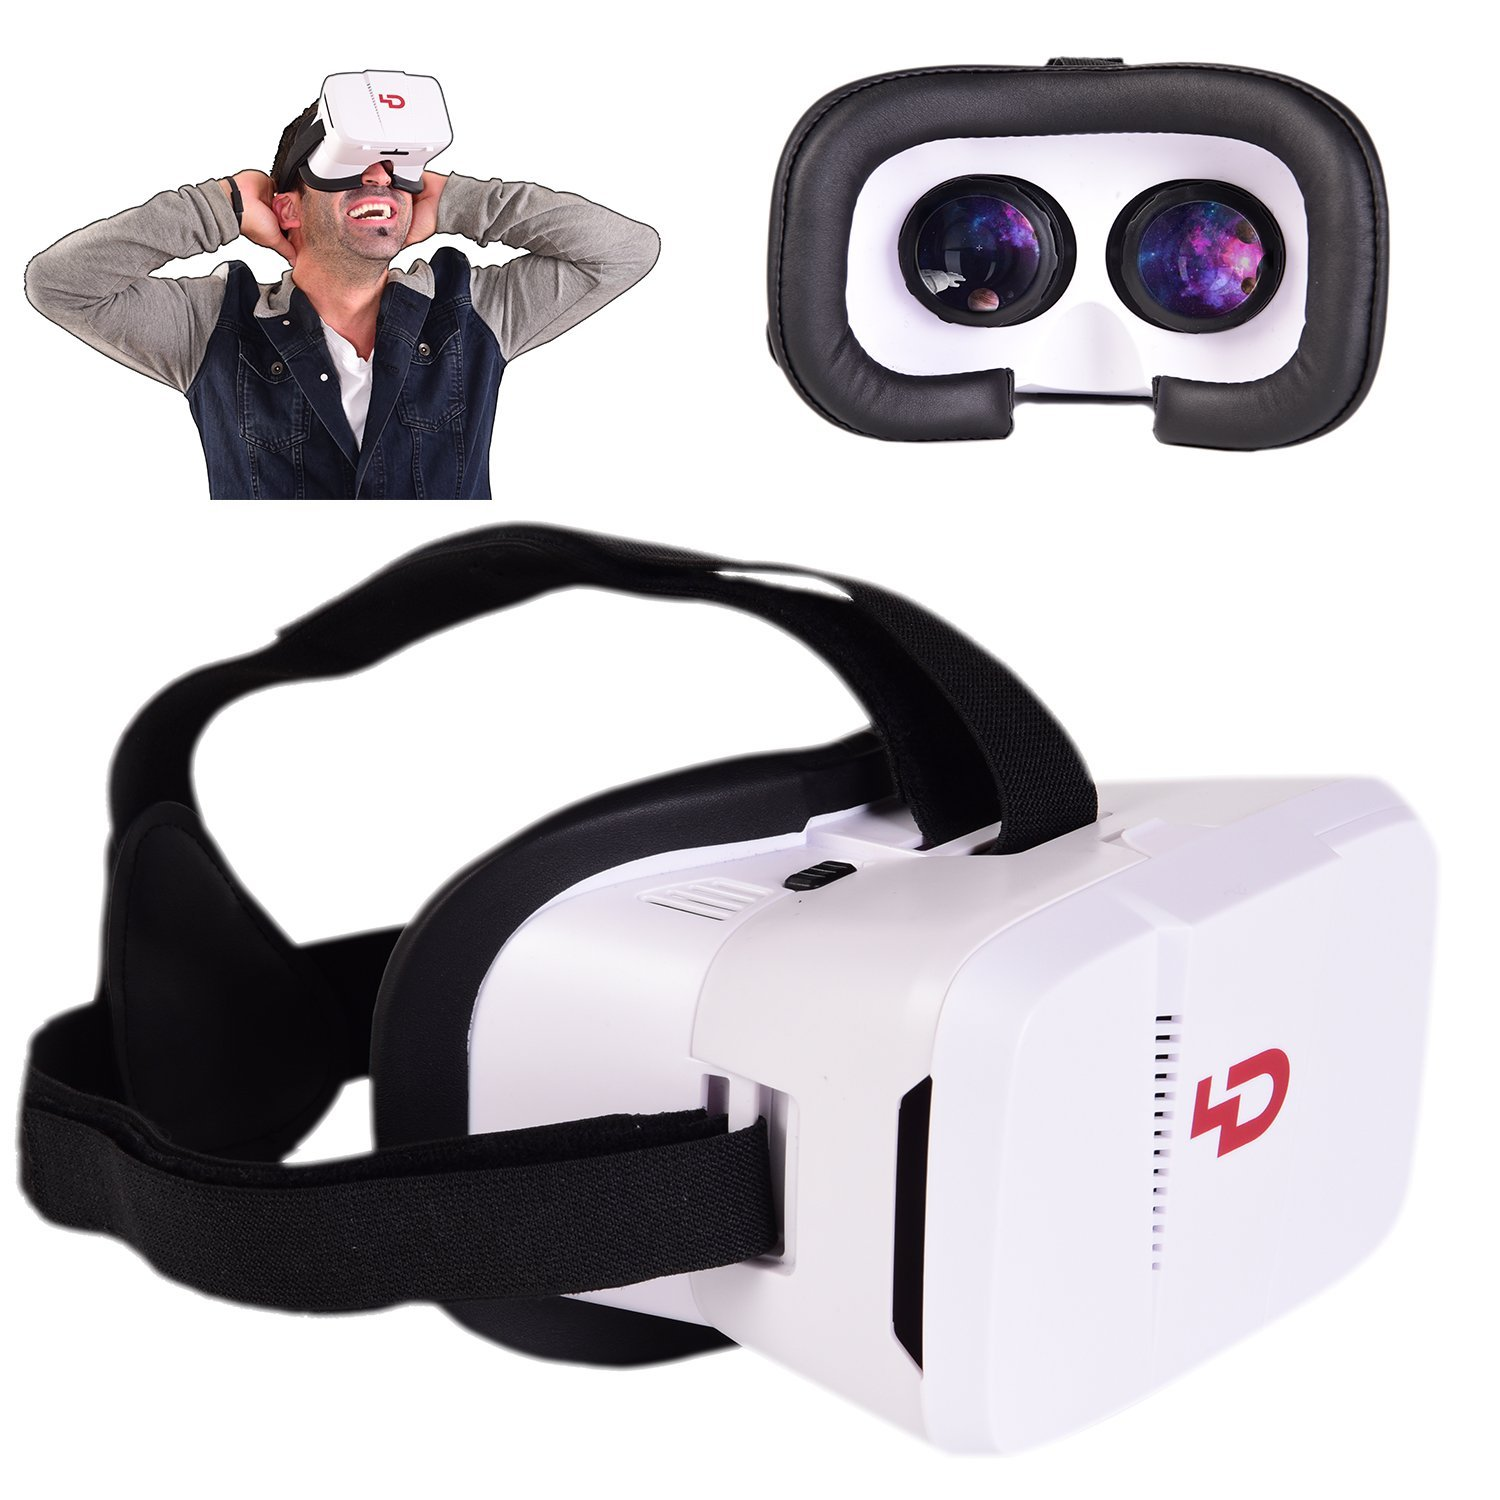 Virtual Reality Headset by 4Dimensions - 360 Degrees Gaming Experience - Supports 3D Movies and Games - Compatible with iPhone Android LG and Windows Smartphones